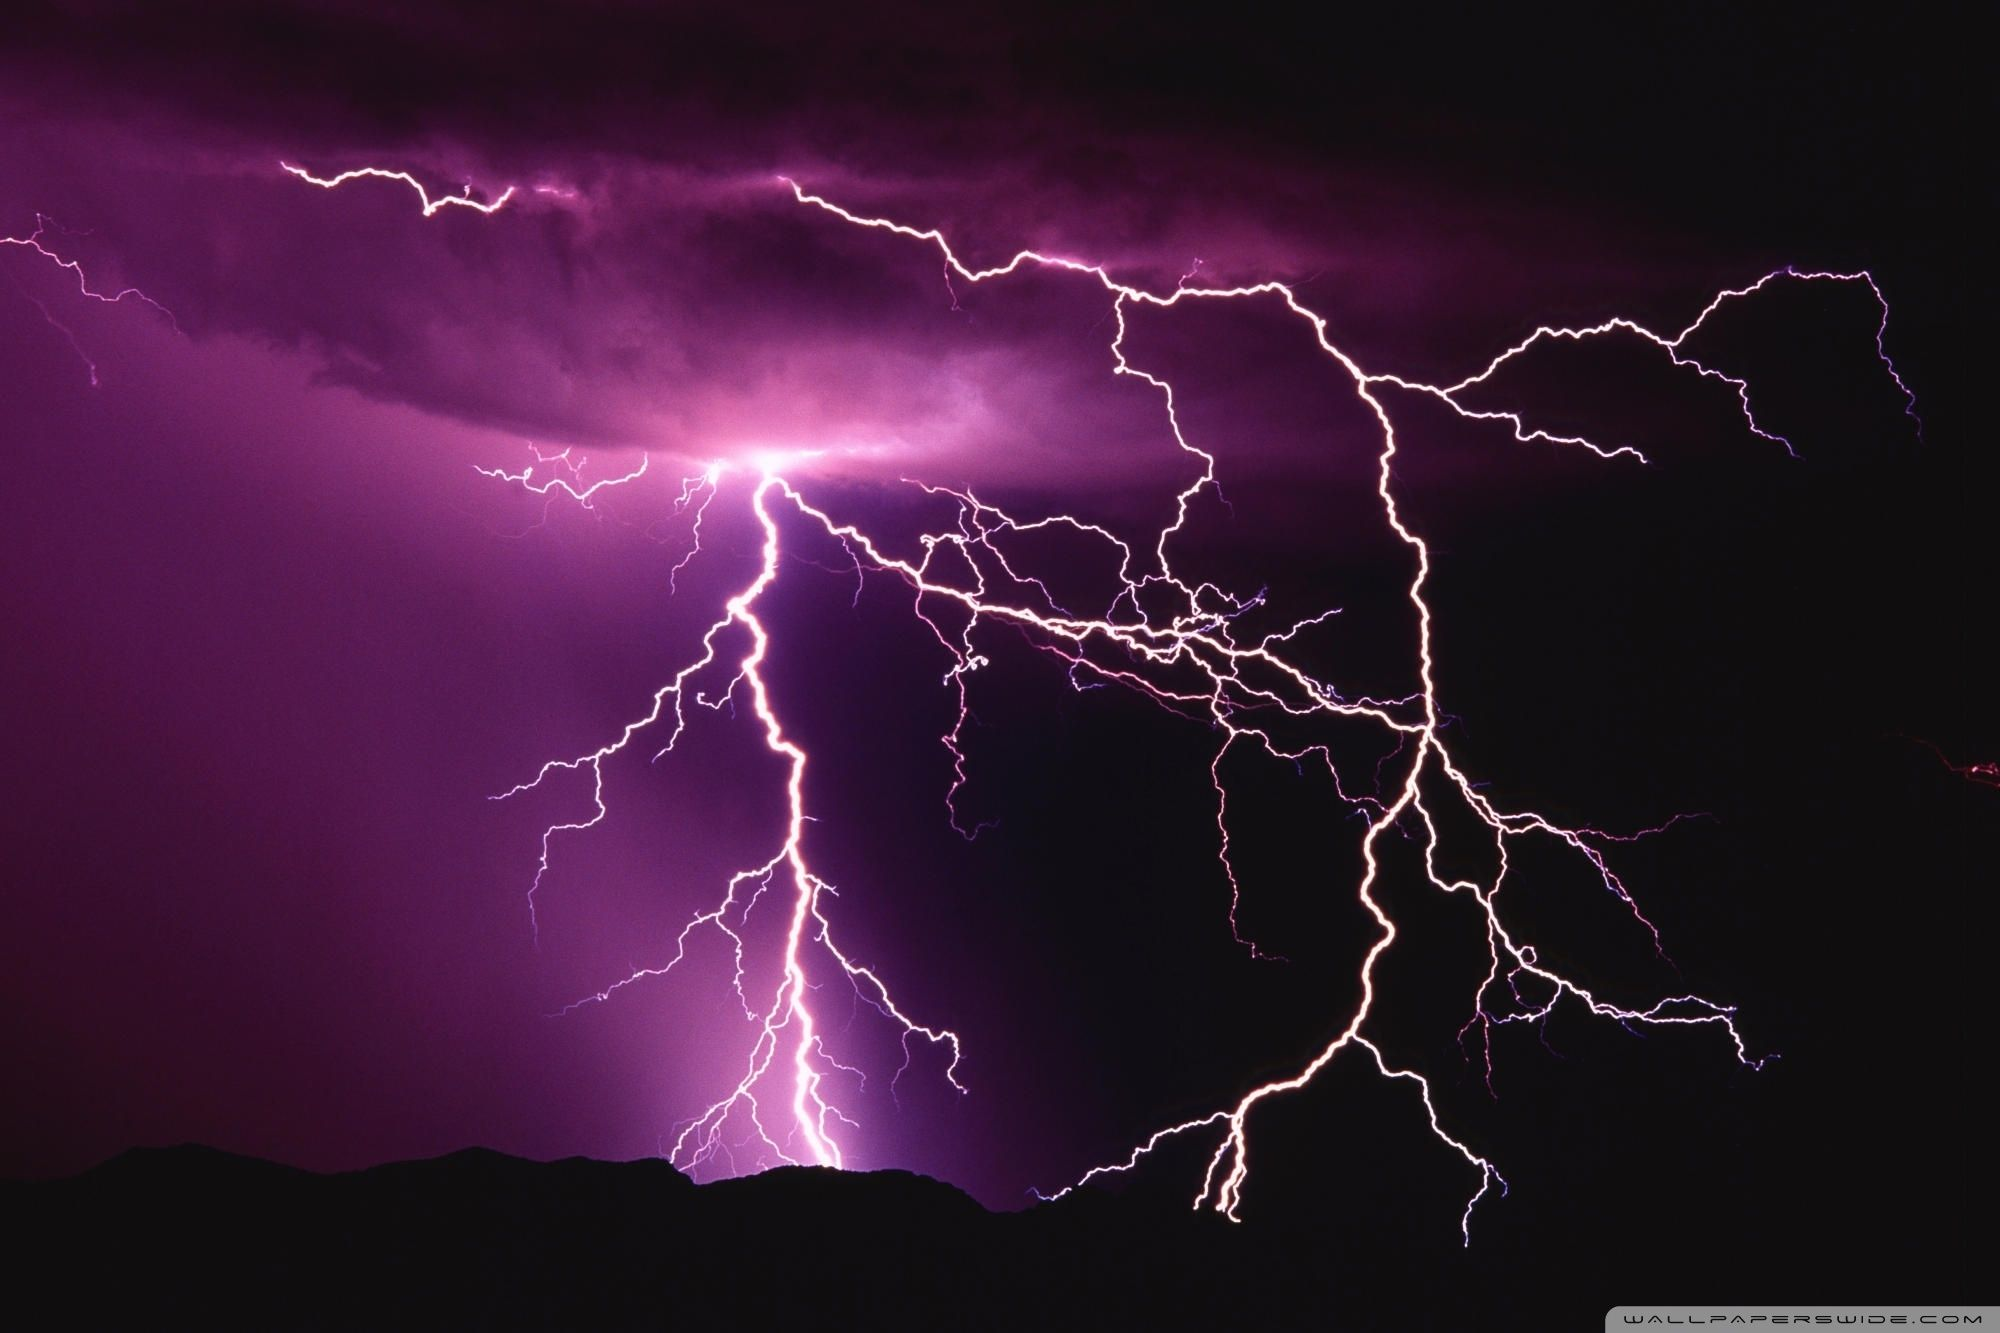 10 Top Lightning Storm Wallpaper Hd Full Hd 1080p For Pc Desktop Purple Lightning Storm Wallpaper Lightning Photography